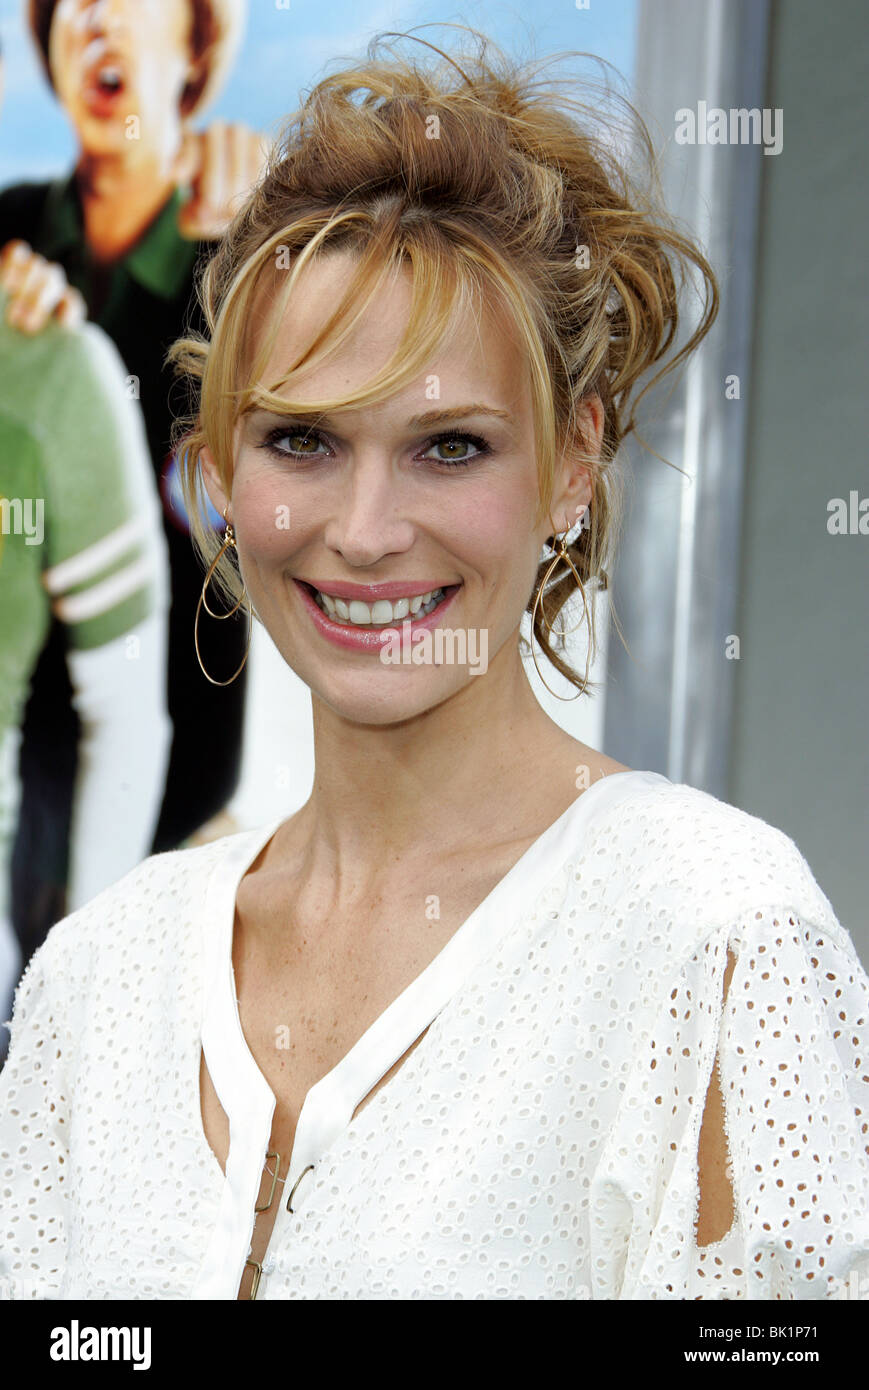 Discussion on this topic: Ruth Dunning, molly-sims-usa-1-2001/